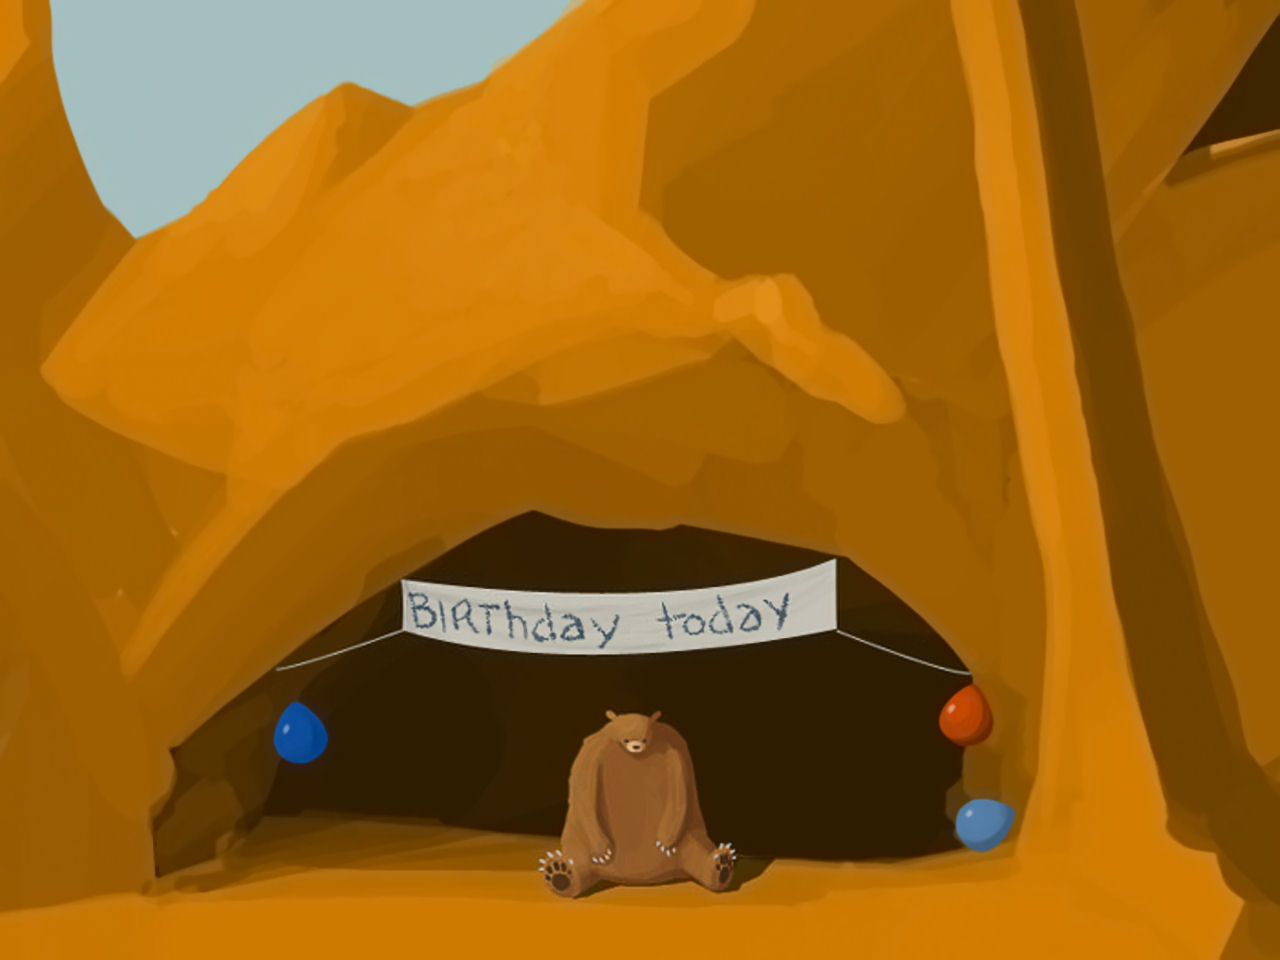 lonely sad bear birthday cave